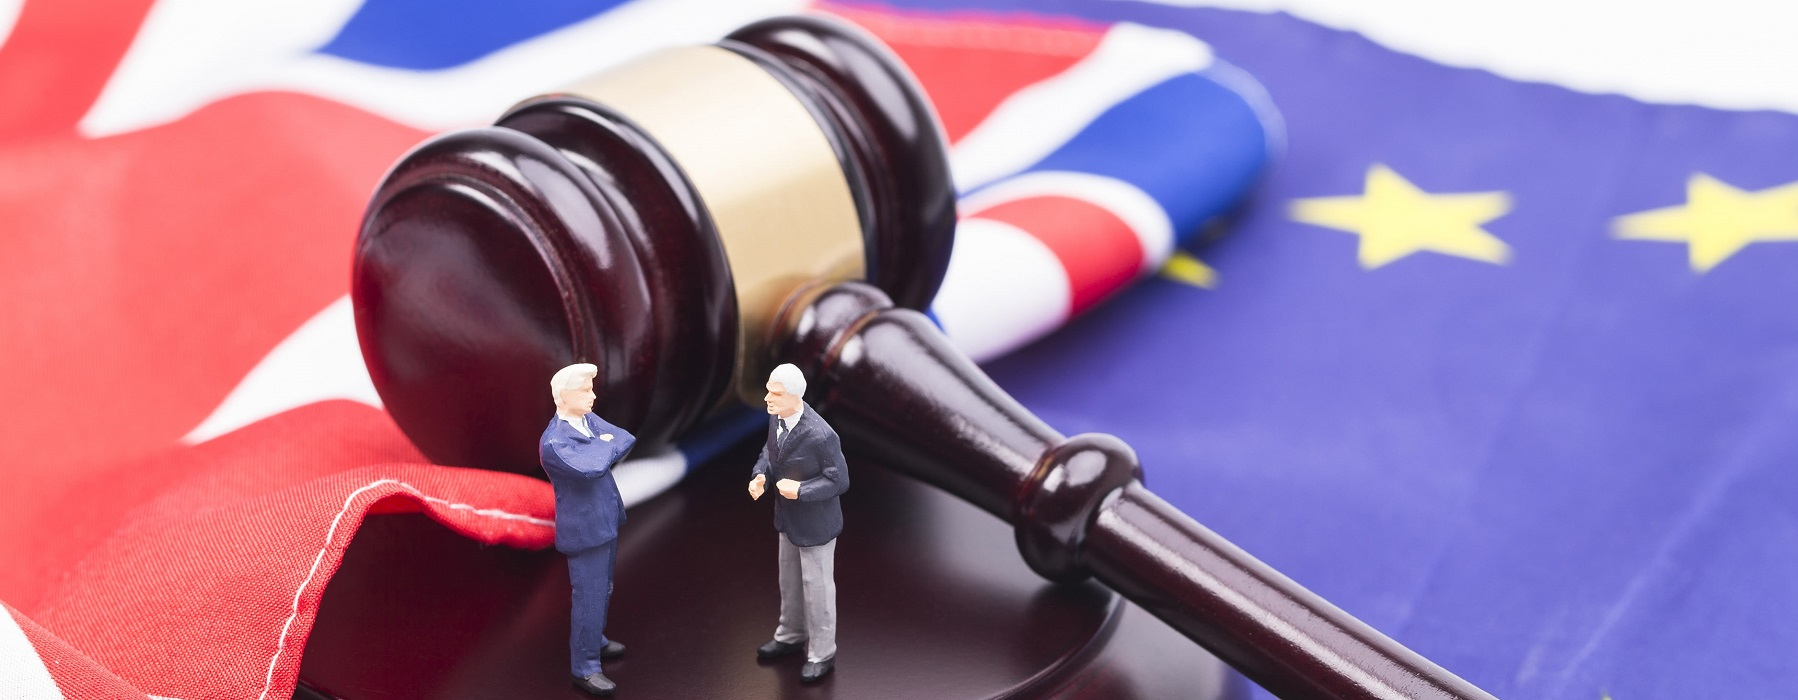 Two small male figurines engage in discussion next to a gavel resting on the flags of the EU and the United Kingdom